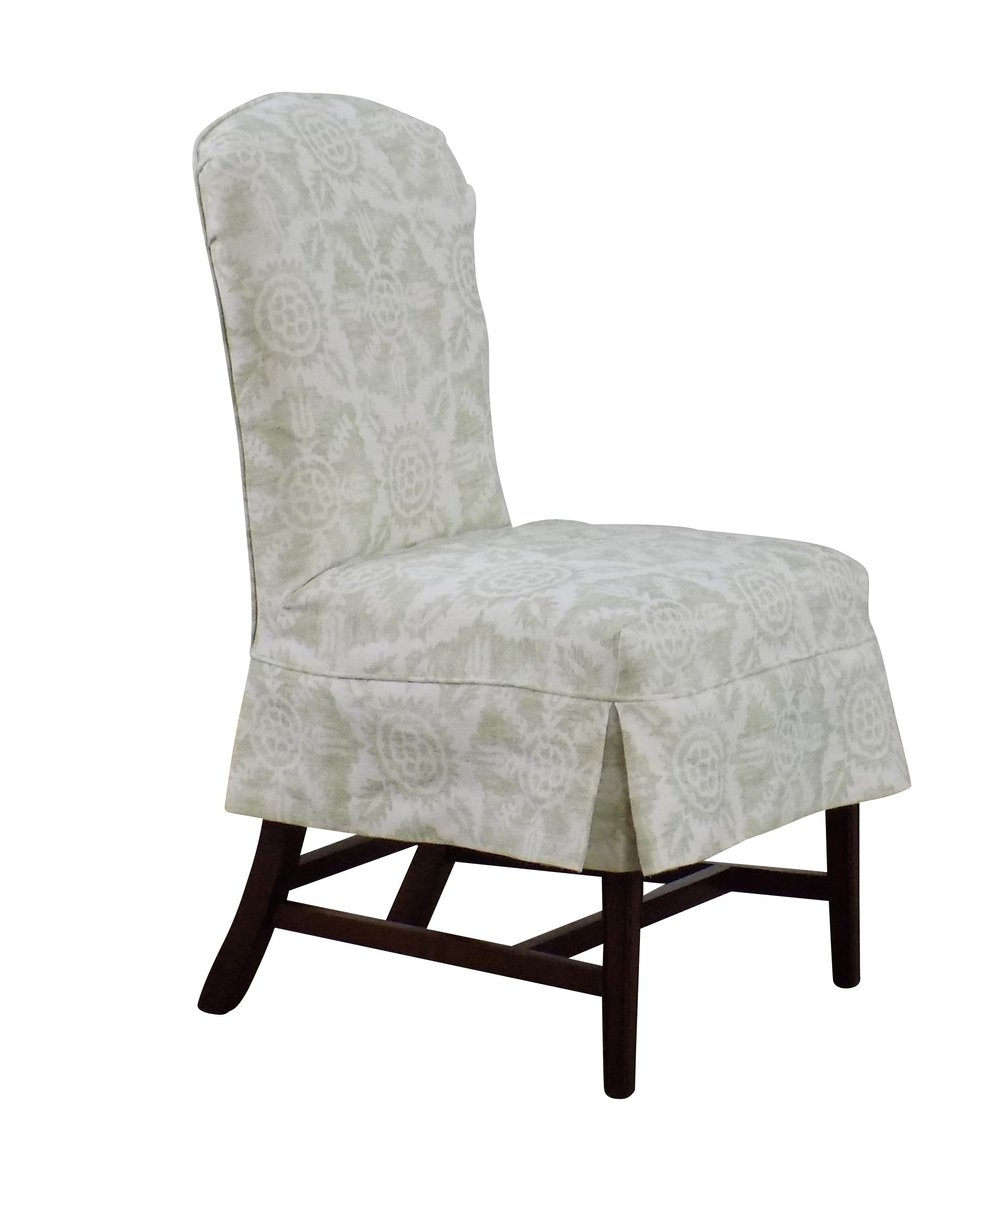 Dining Chairs — Rooms & Gardens Intended For Current Clint Side Chairs (View 10 of 20)